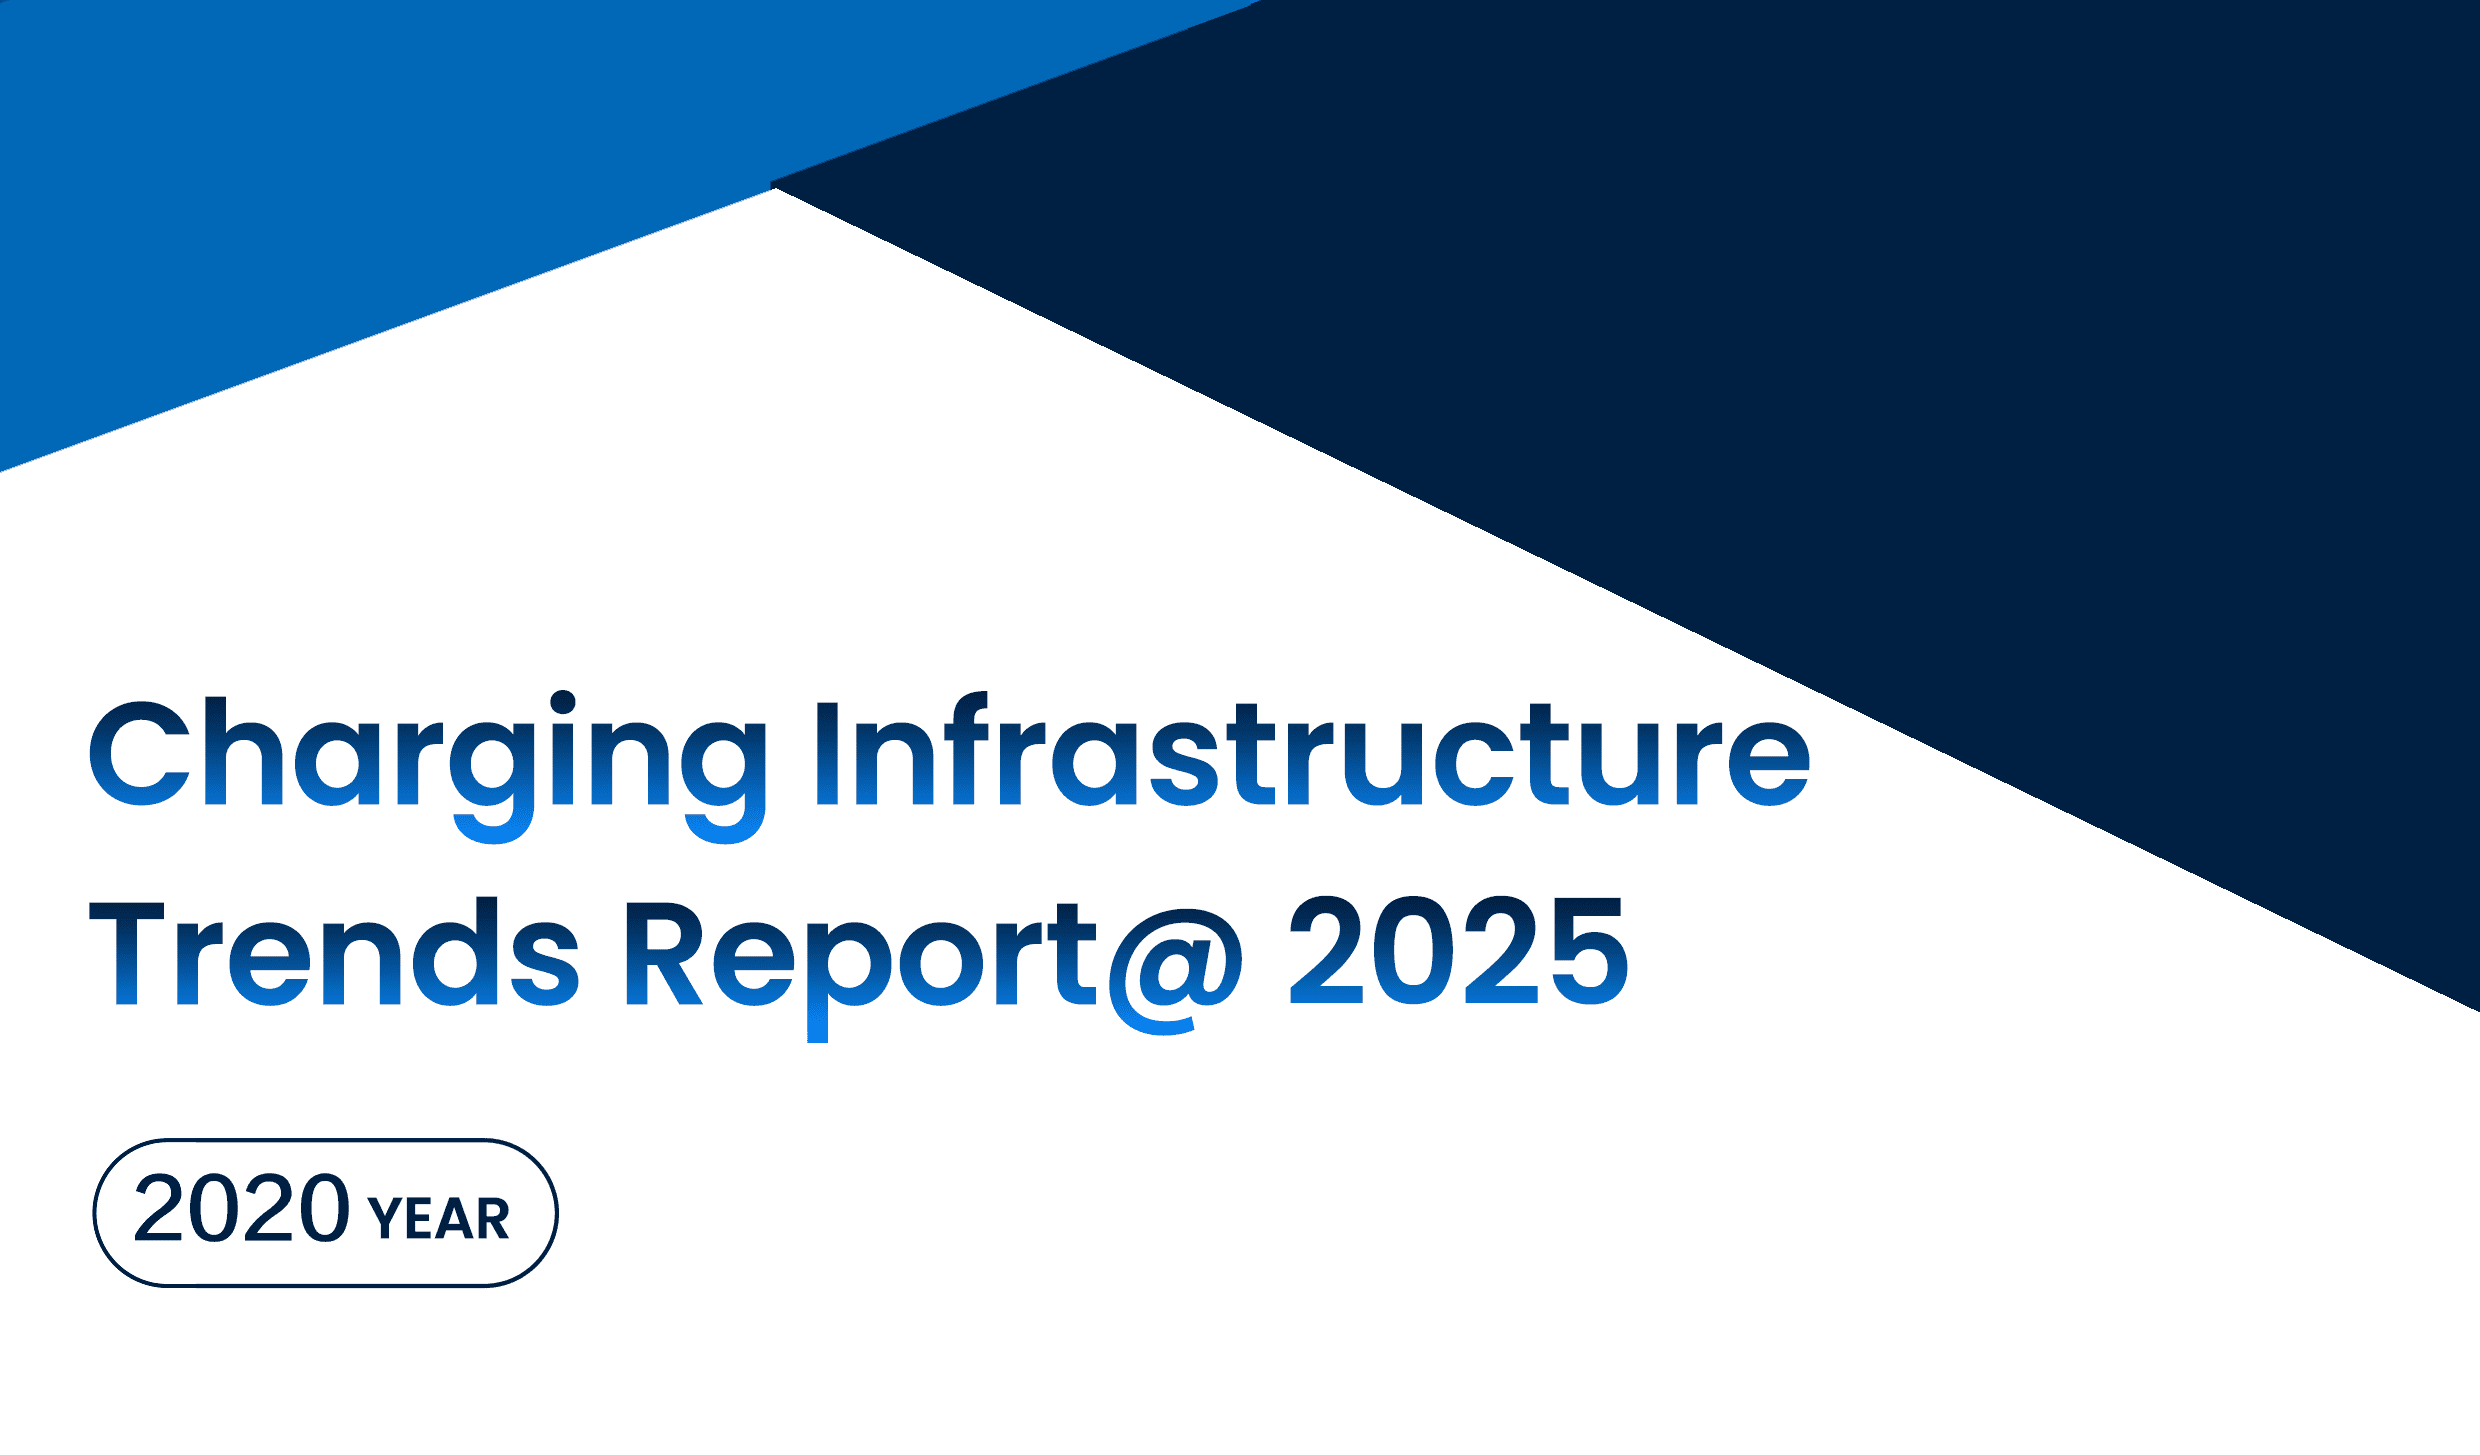 Charging Infrastructure Trends Report@ 2025